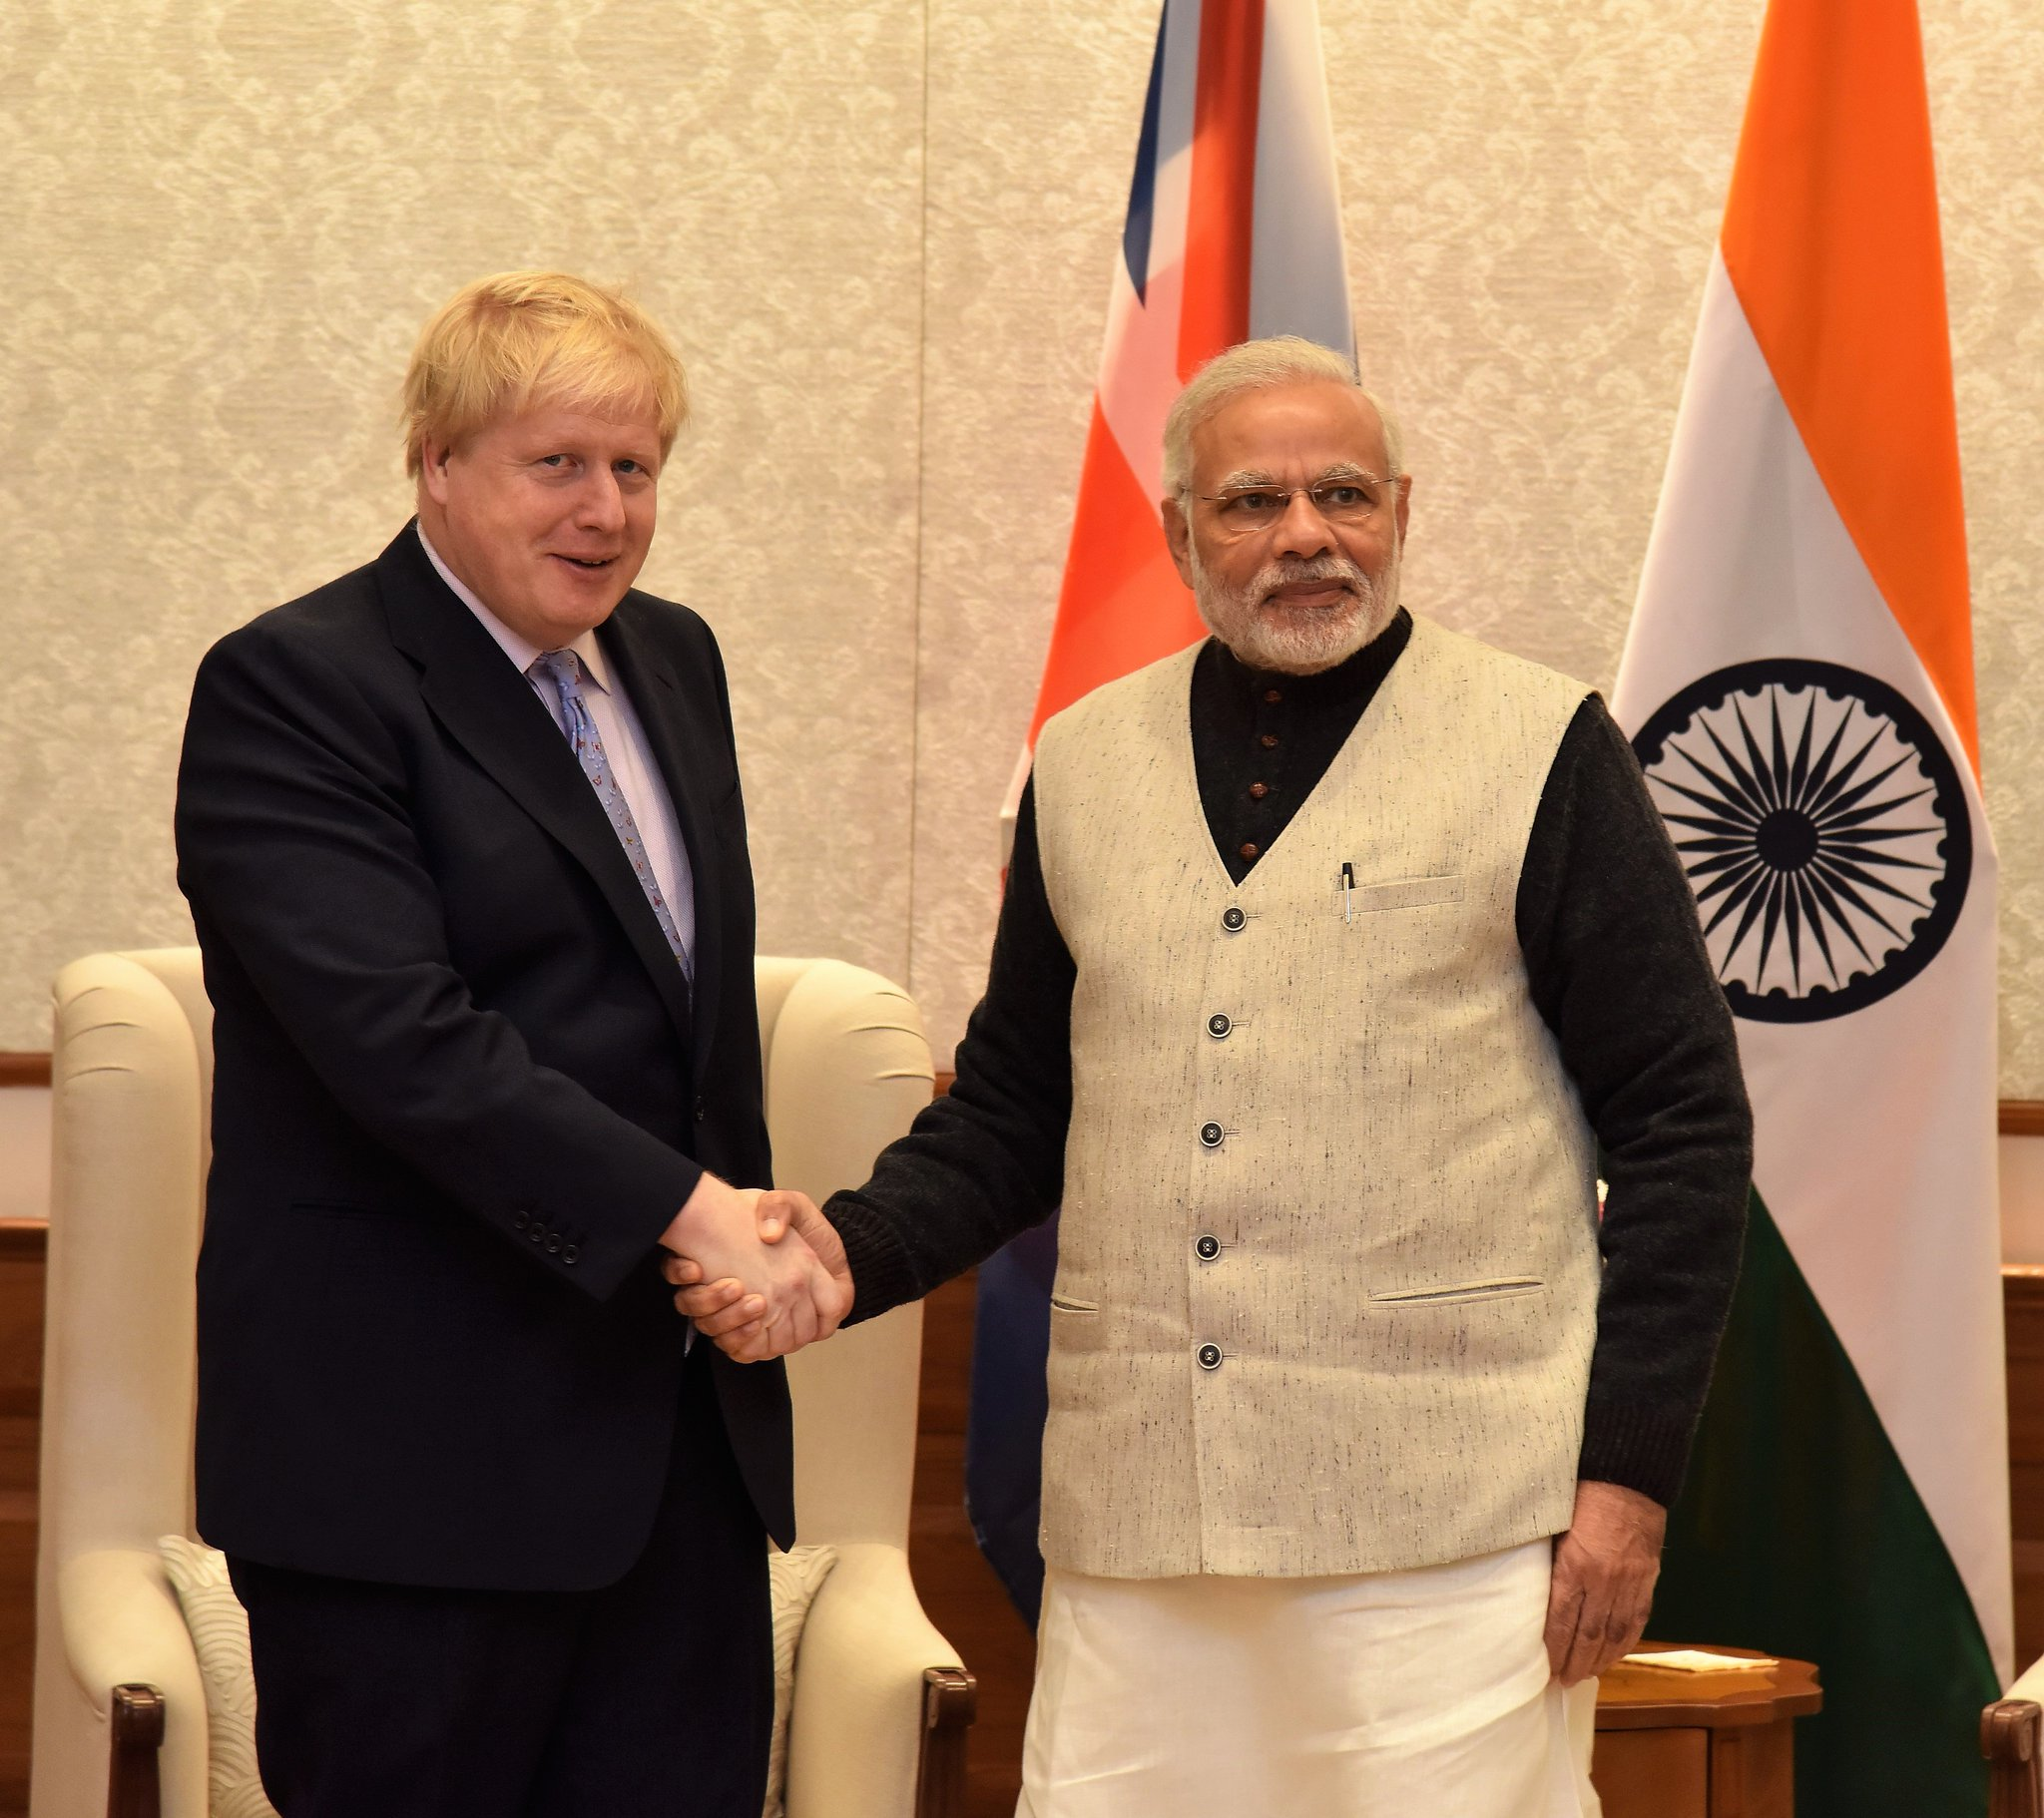 Thumbnail for Boris Johnson visits India, 18-19 January 2017